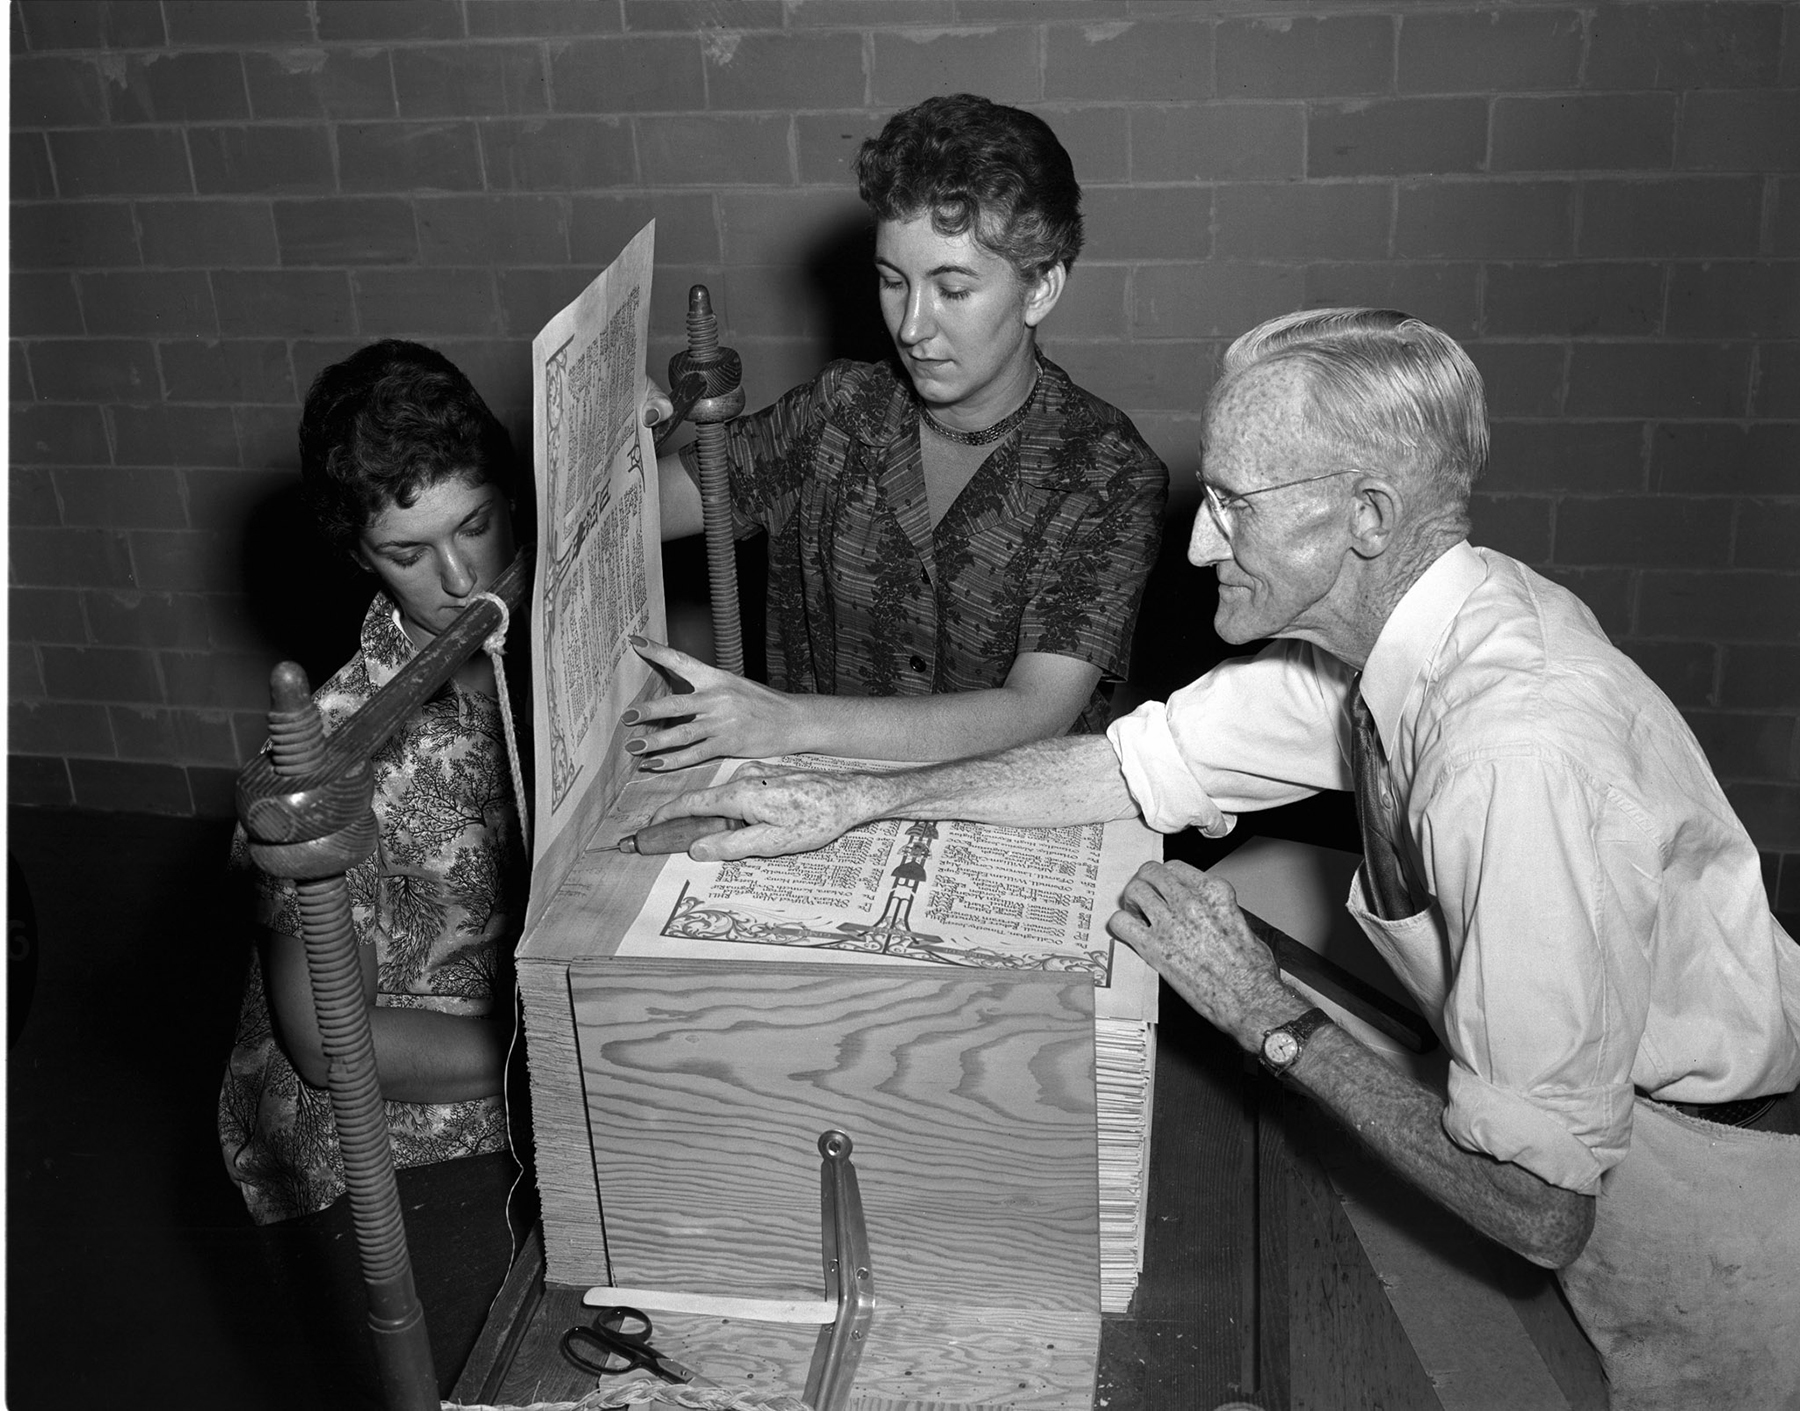 In early autumn 1957, Queen's Printers stitchers Lise Denis (left) and Ninette Denis, of Hull, Québec, and bookbinder Daniel Darragh, of Ottawa, Ontario, put the final touches on Canada's Second World War Book of Remembrance, which records the names of 44,891 Canadian servicemen and servicewomen who gave their lives during that war. This Book of Remembrance was dedicated on Remembrance Day, November 11, 1957, by Governor General and Commander-in-Chief of Canada Vincent Massey in the Memorial Chamber of the Parliament Buildings in Ottawa. PHOTO: DND Archives, AZ-8141-22